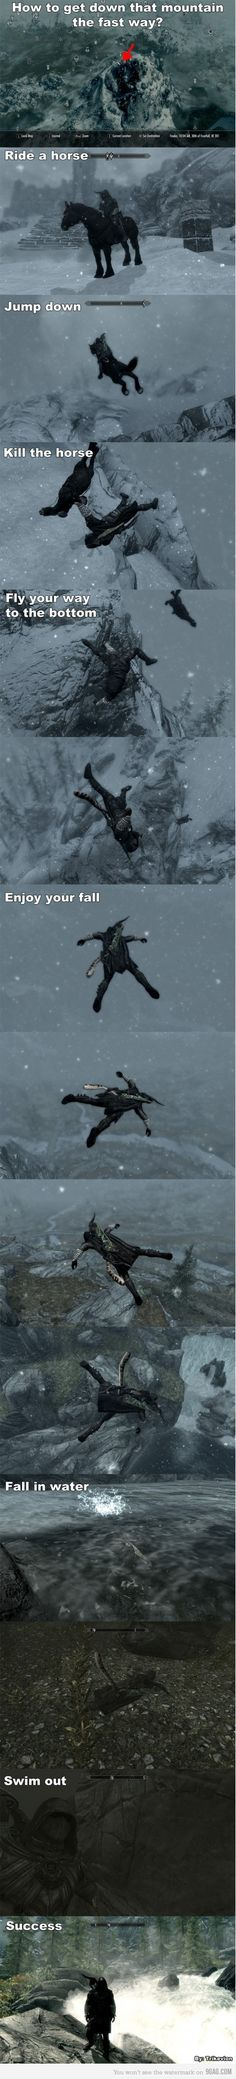 Kill the horse?!? F that!! You jump down slowly!! People don't jump enough IMO.